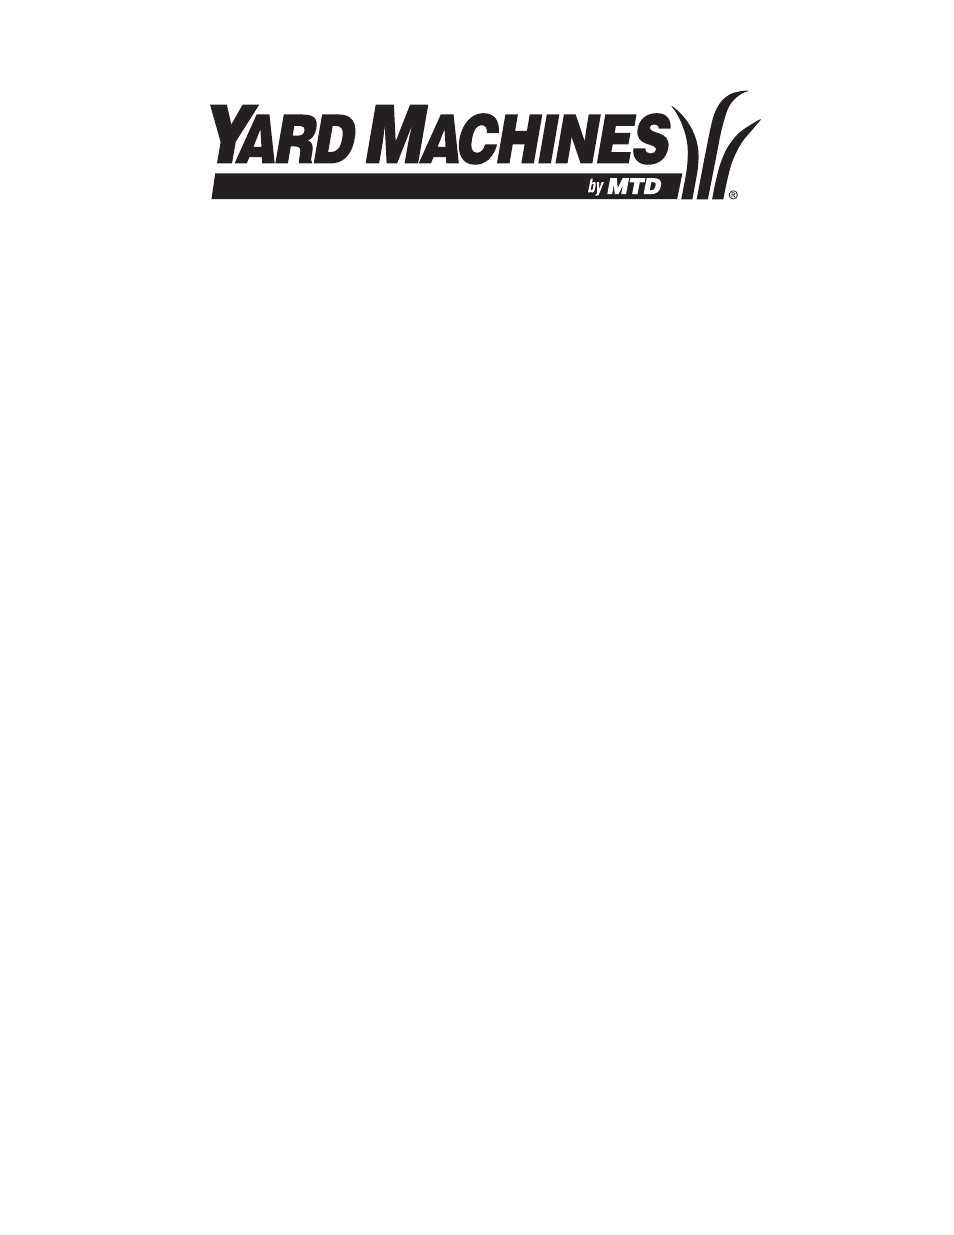 Mtd Je 130 Wiring Diagram Page 3 And Schematics Manual Llc Manufacturer S Limited Warranty For Yard Machines 769 Rh Manuair Com User Guide